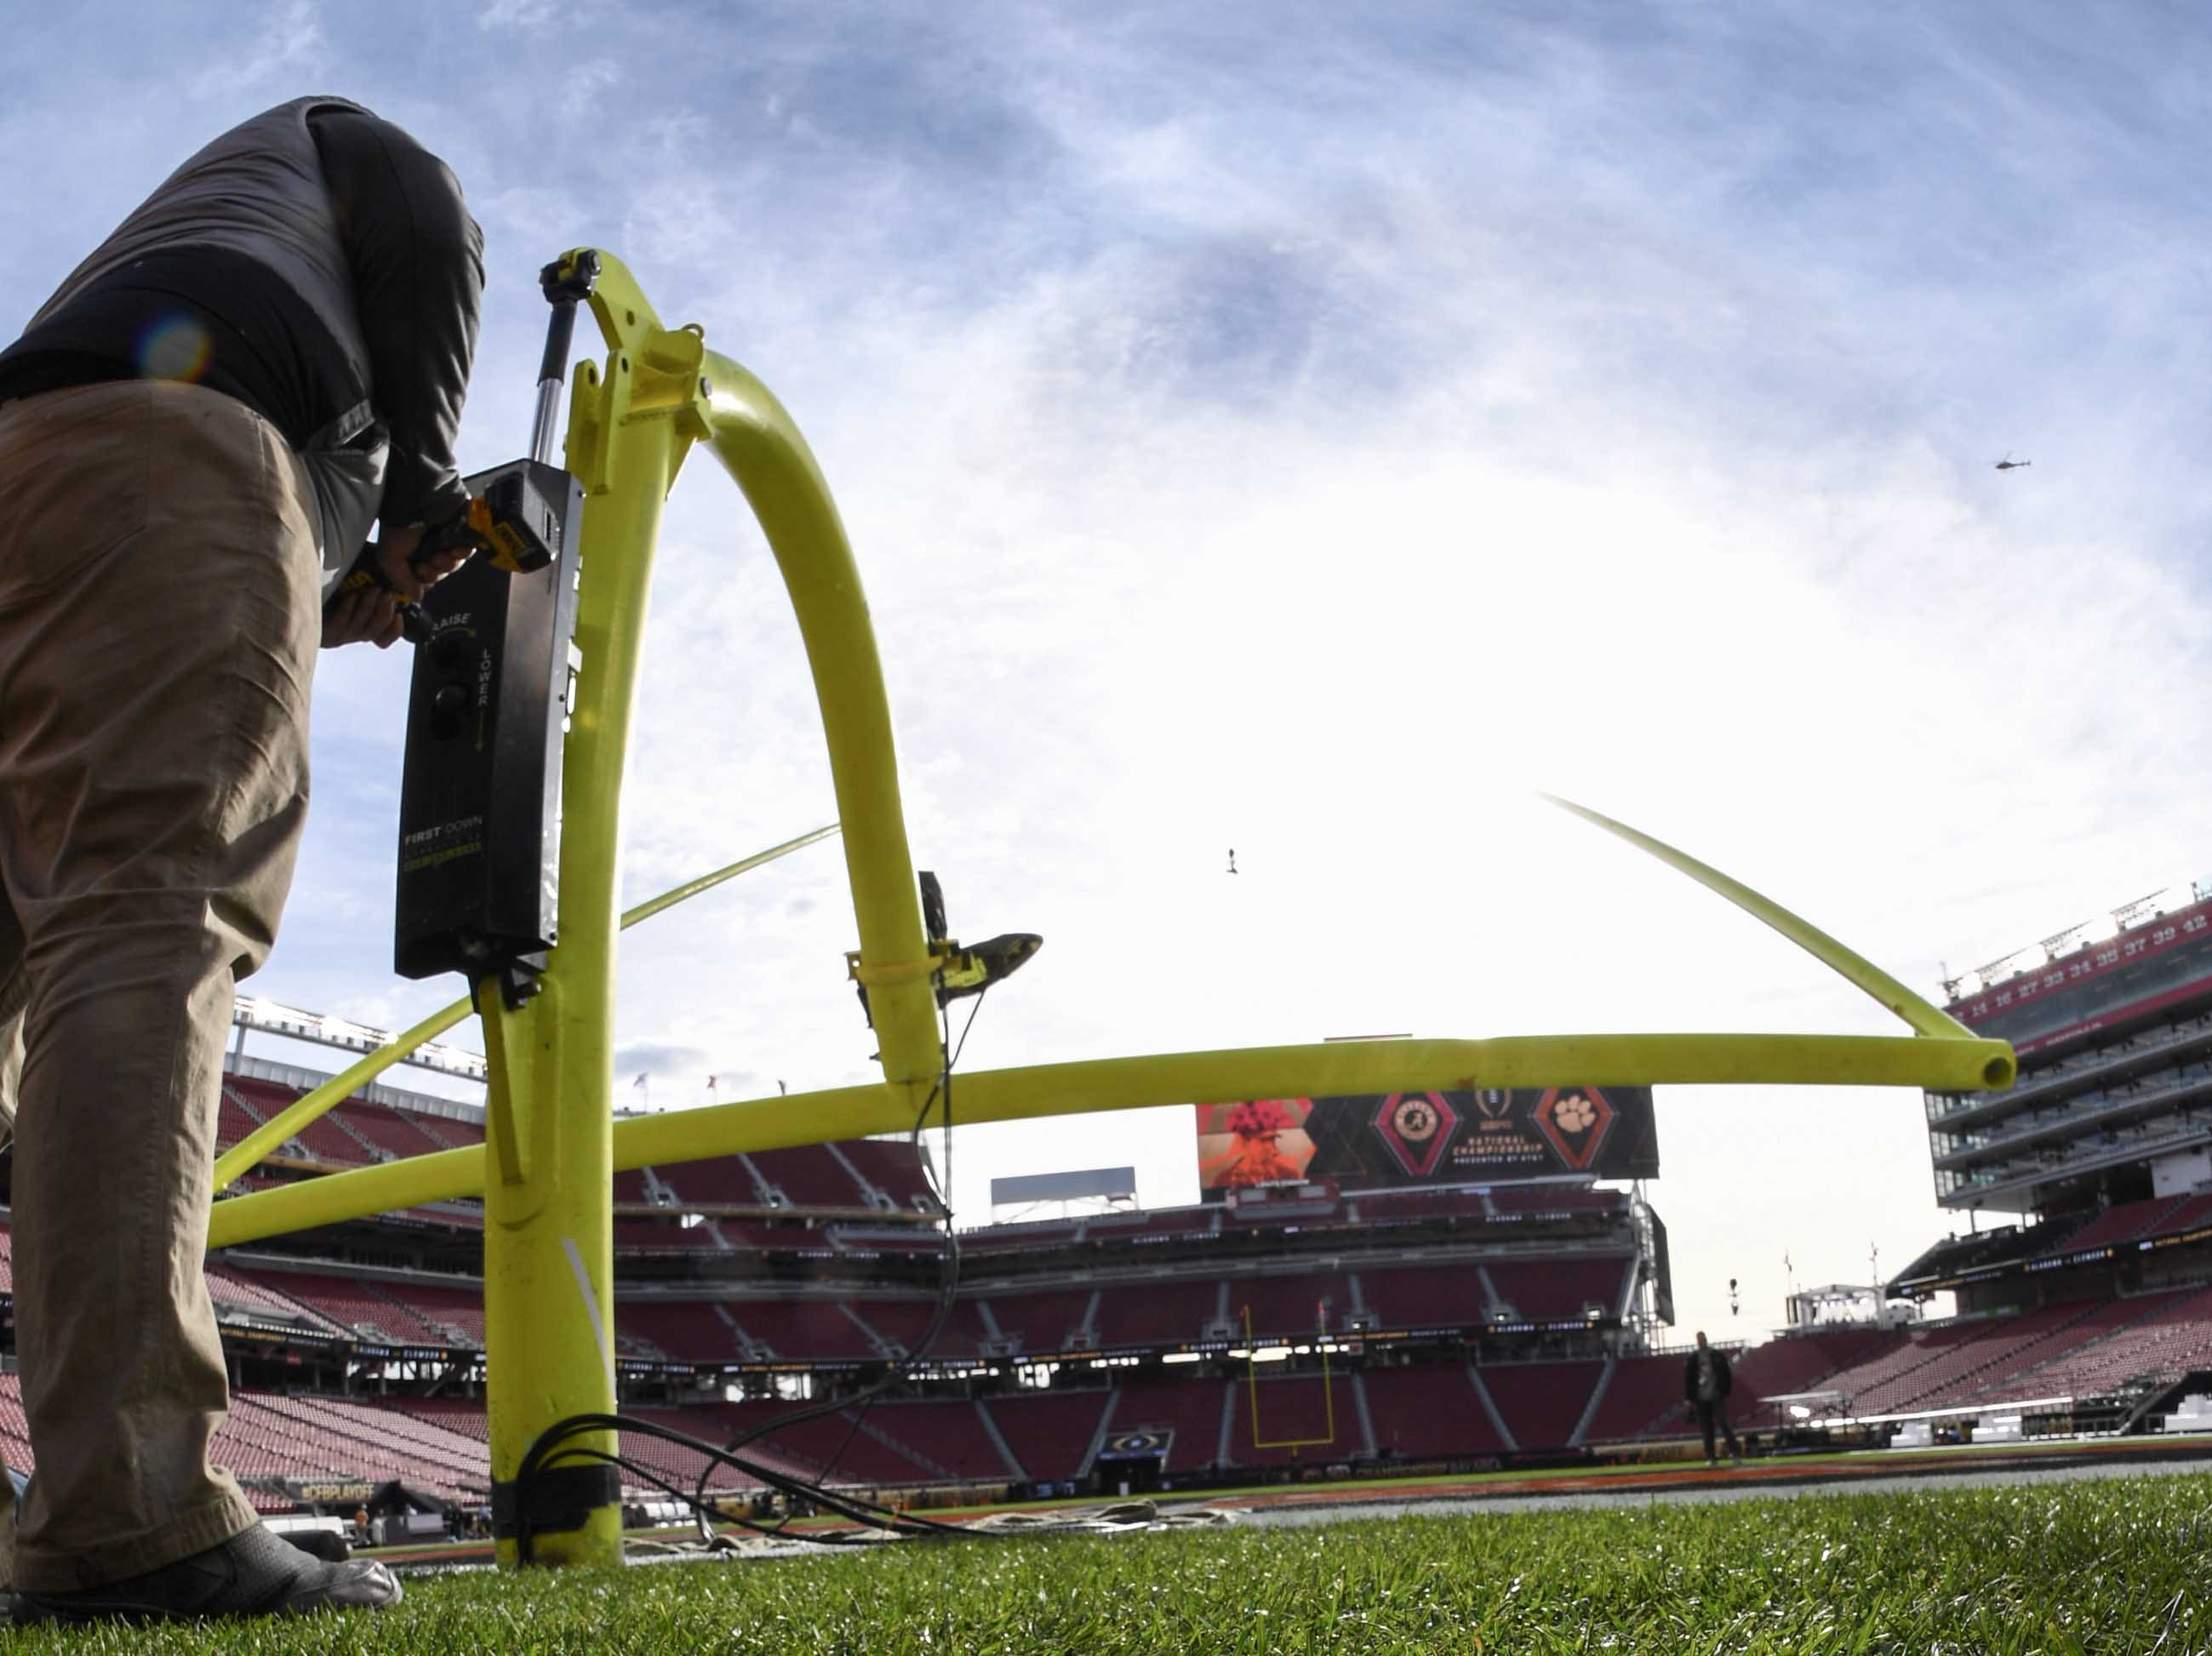 Goal posts are raised near dry grass, which was covered during recent rain, before the kickoff during the College Football Championship at Levi's Stadium in Santa Clara, California Monday, January 7, 2019.